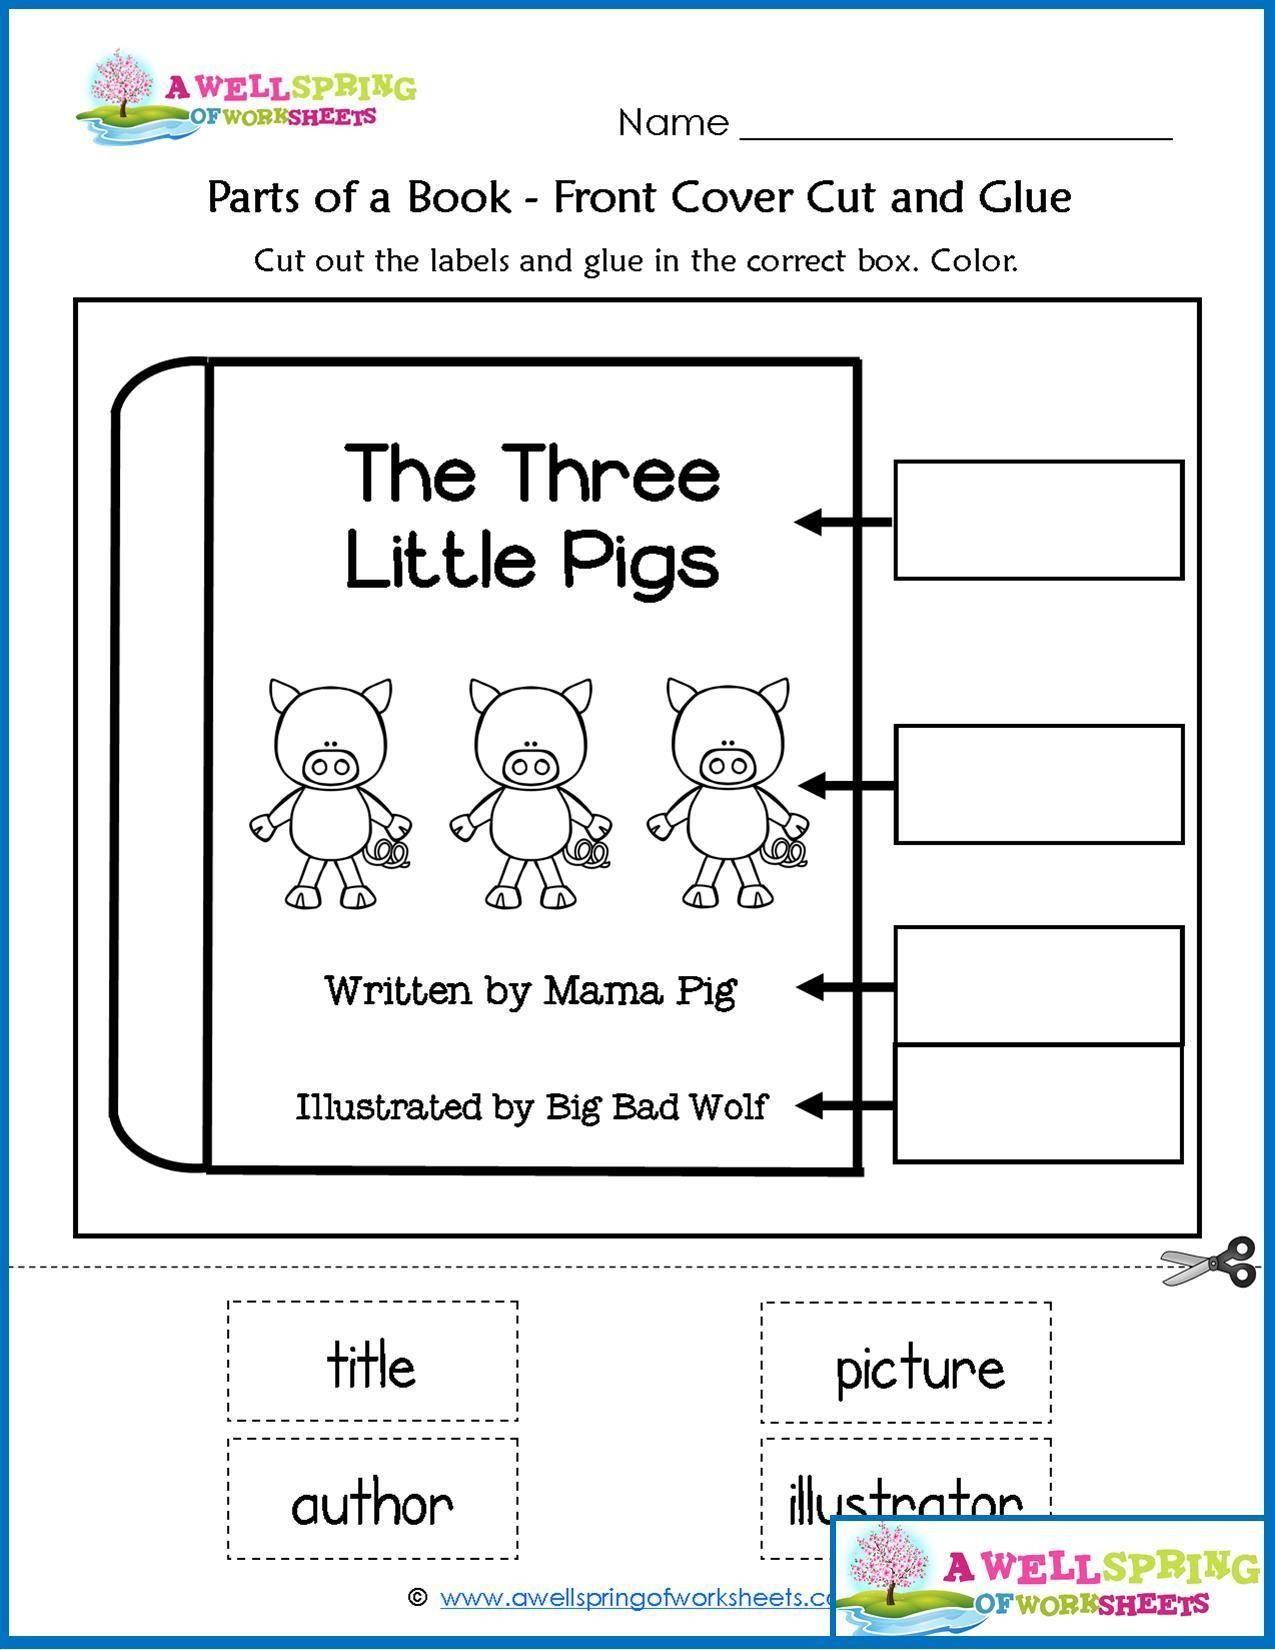 Fifth Grade Vocabulary Worksheets   Printable Worksheets and Activities for  Teachers [ 1650 x 1275 Pixel ]